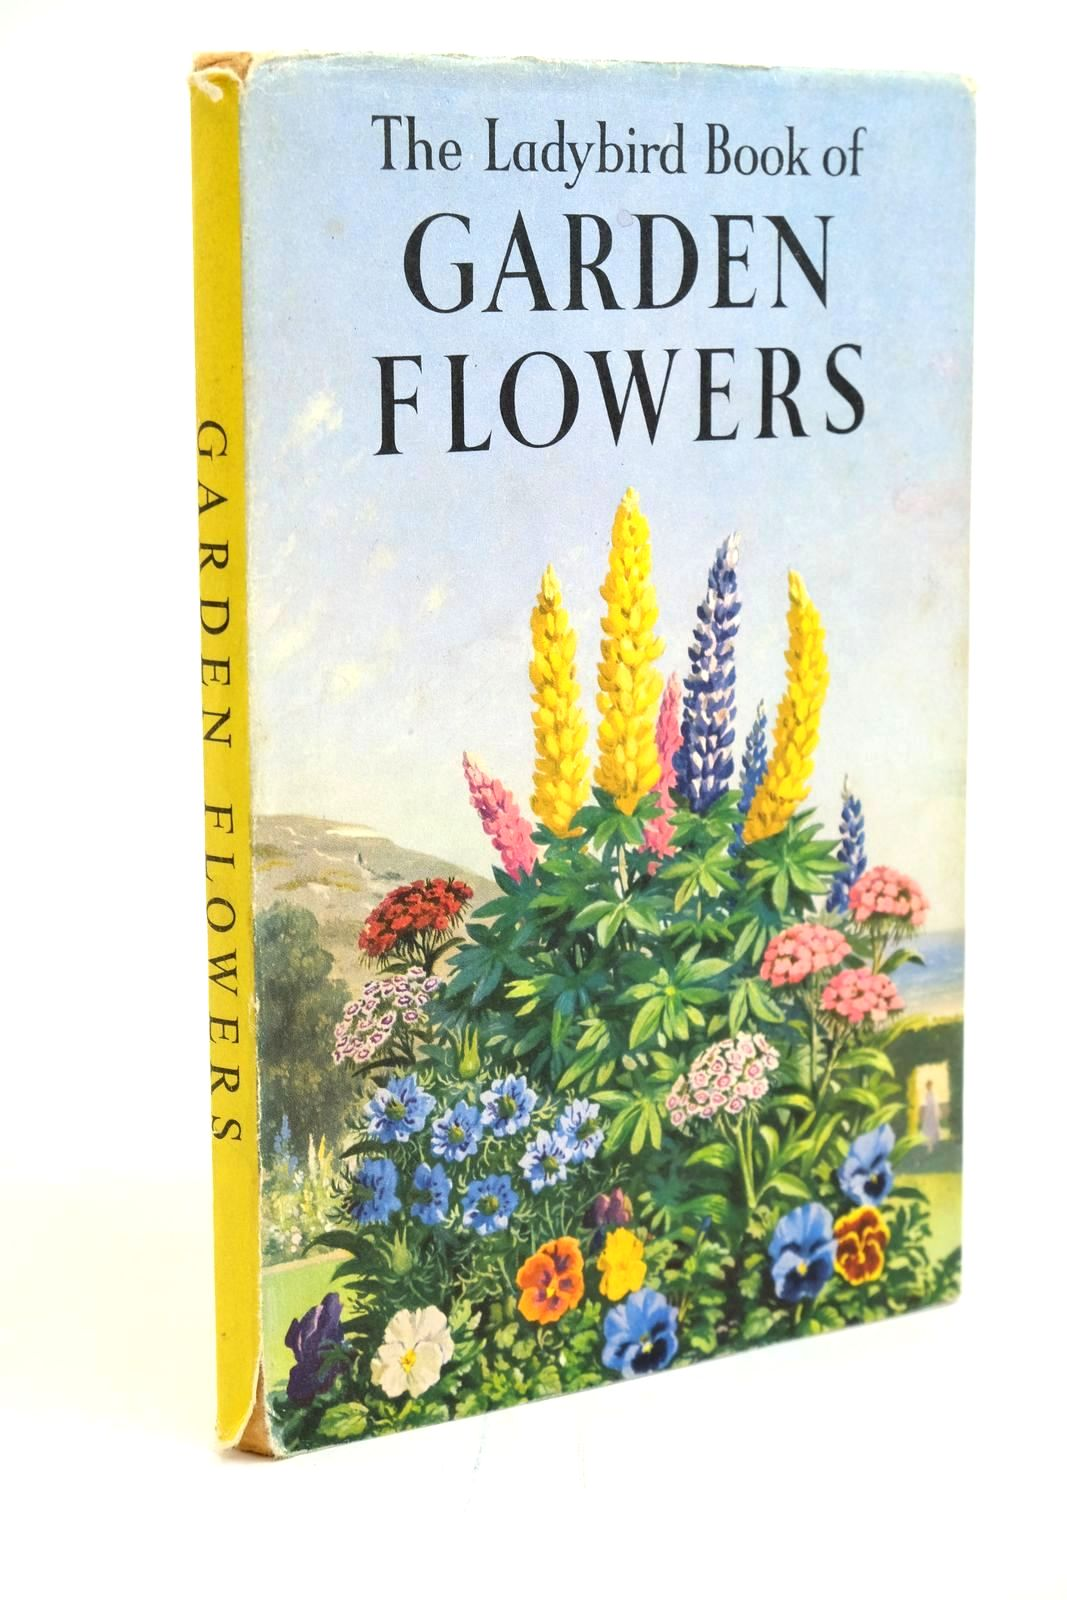 Photo of THE LADYBIRD BOOK OF GARDEN FLOWERS written by Vesey-Fitzgerald, Brian illustrated by Leigh-Pemberton, John published by Wills & Hepworth Ltd. (STOCK CODE: 1321426)  for sale by Stella & Rose's Books